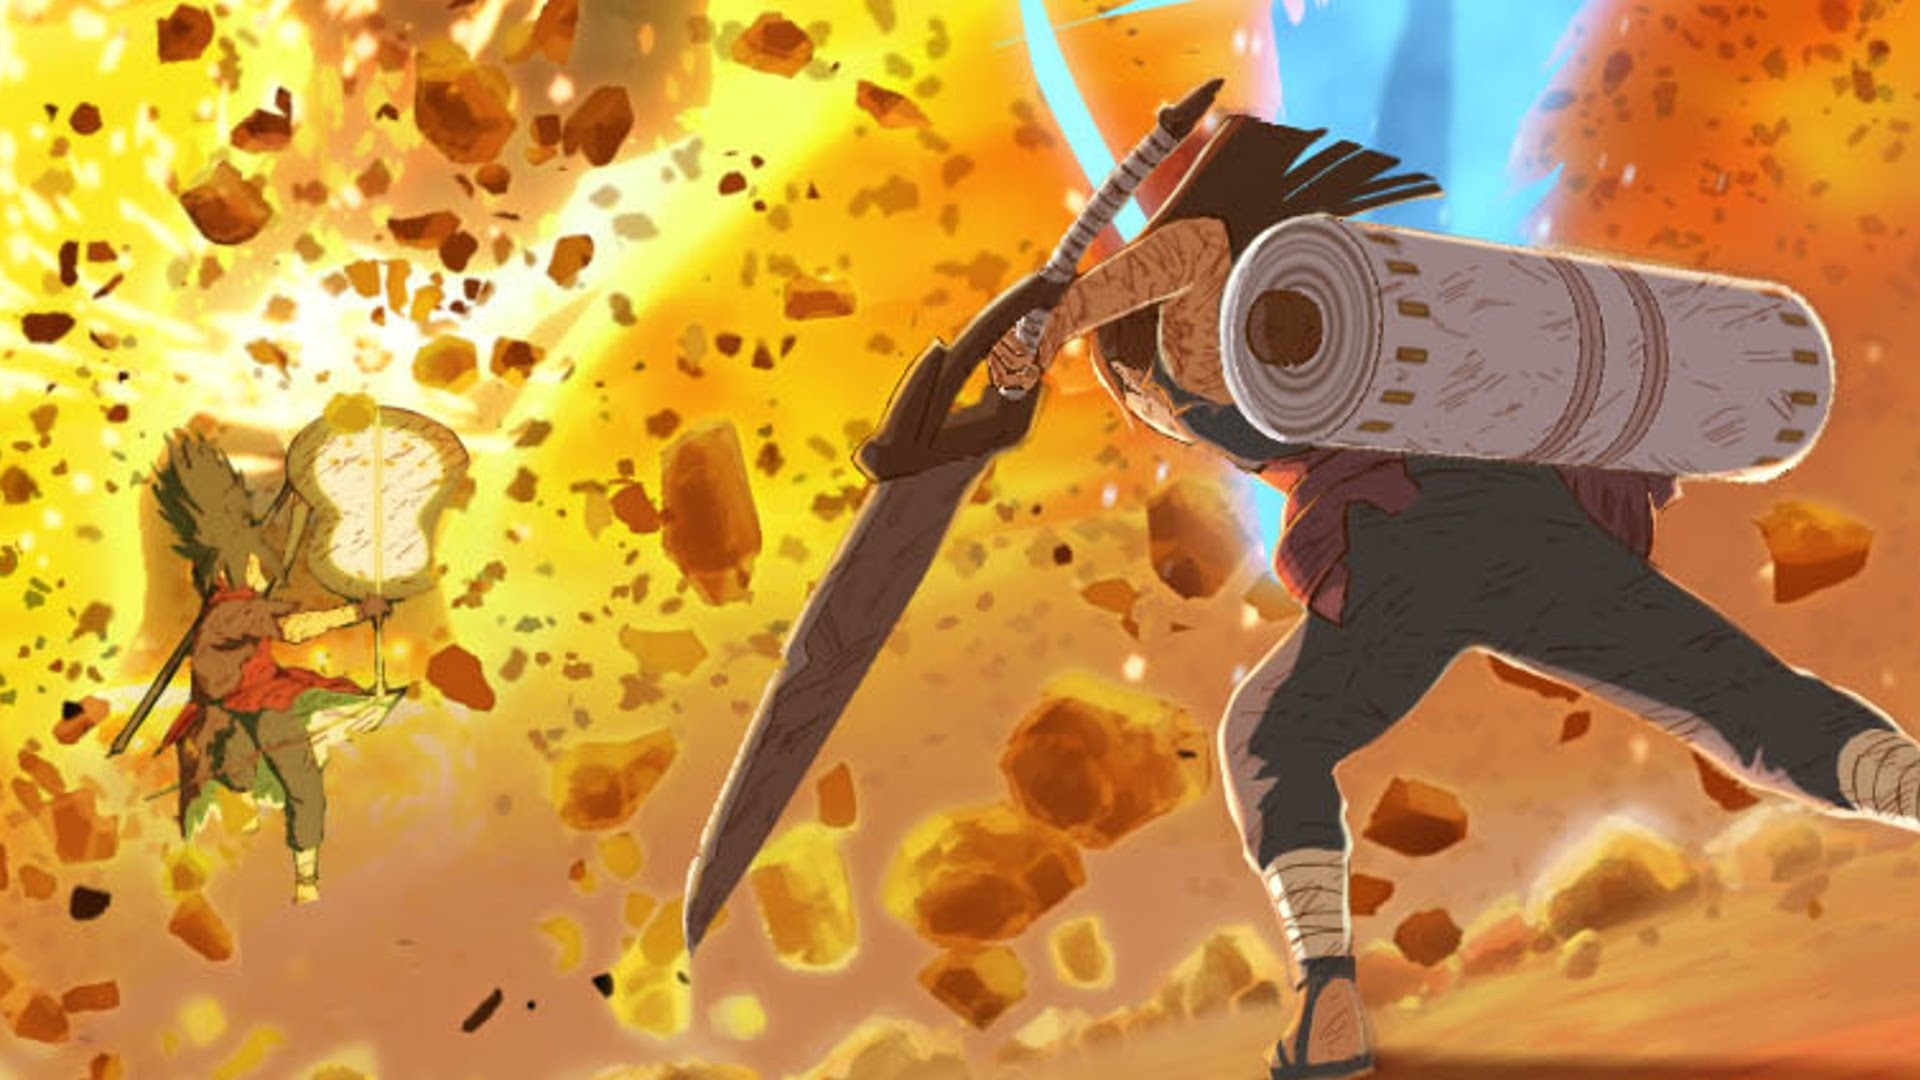 Naruto Ultimate Ninja Storm 4 Wallpaper Posted By Michelle Cunningham